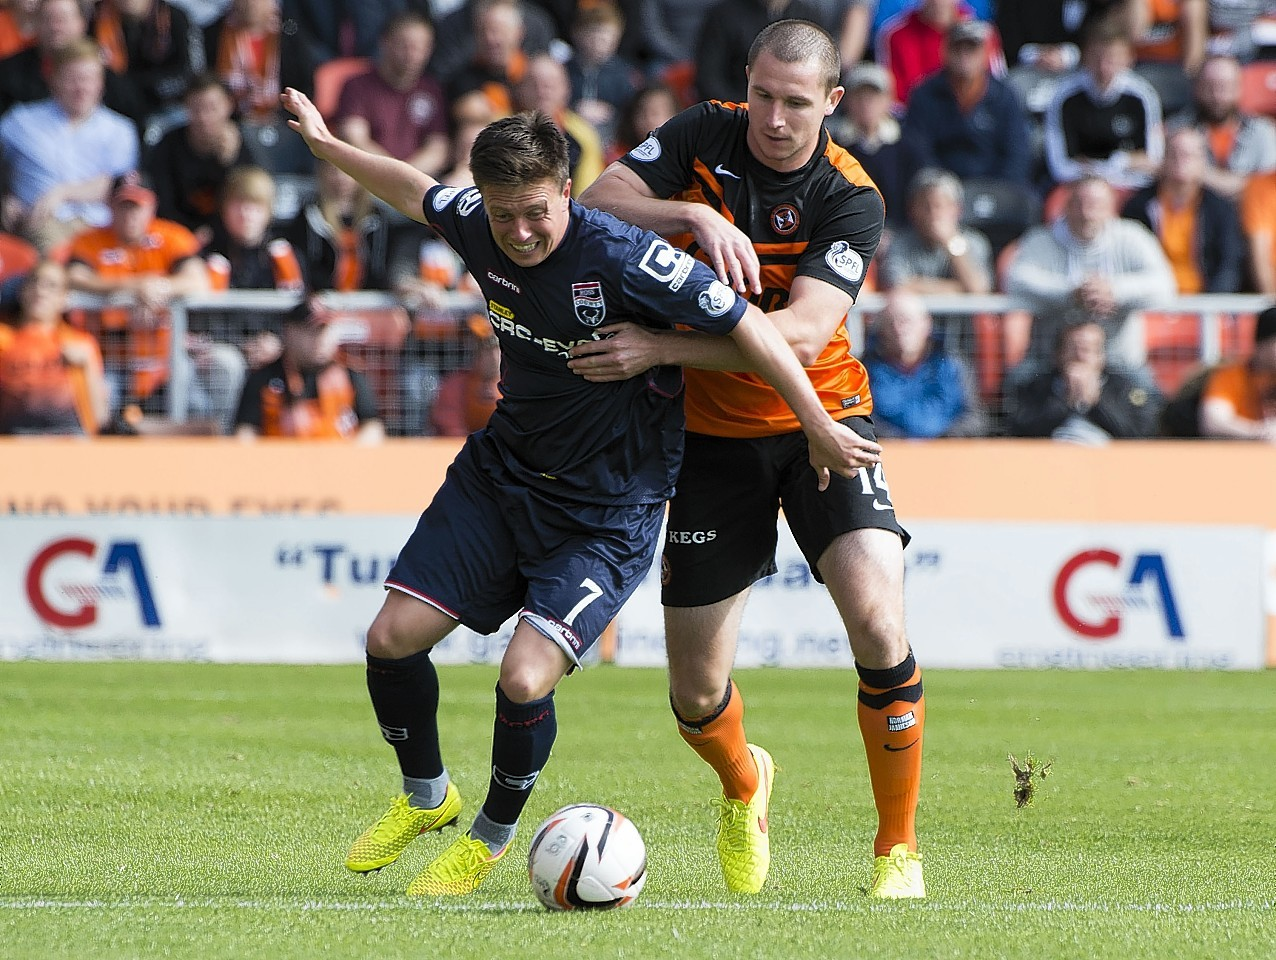 Dundee United vs Ross County